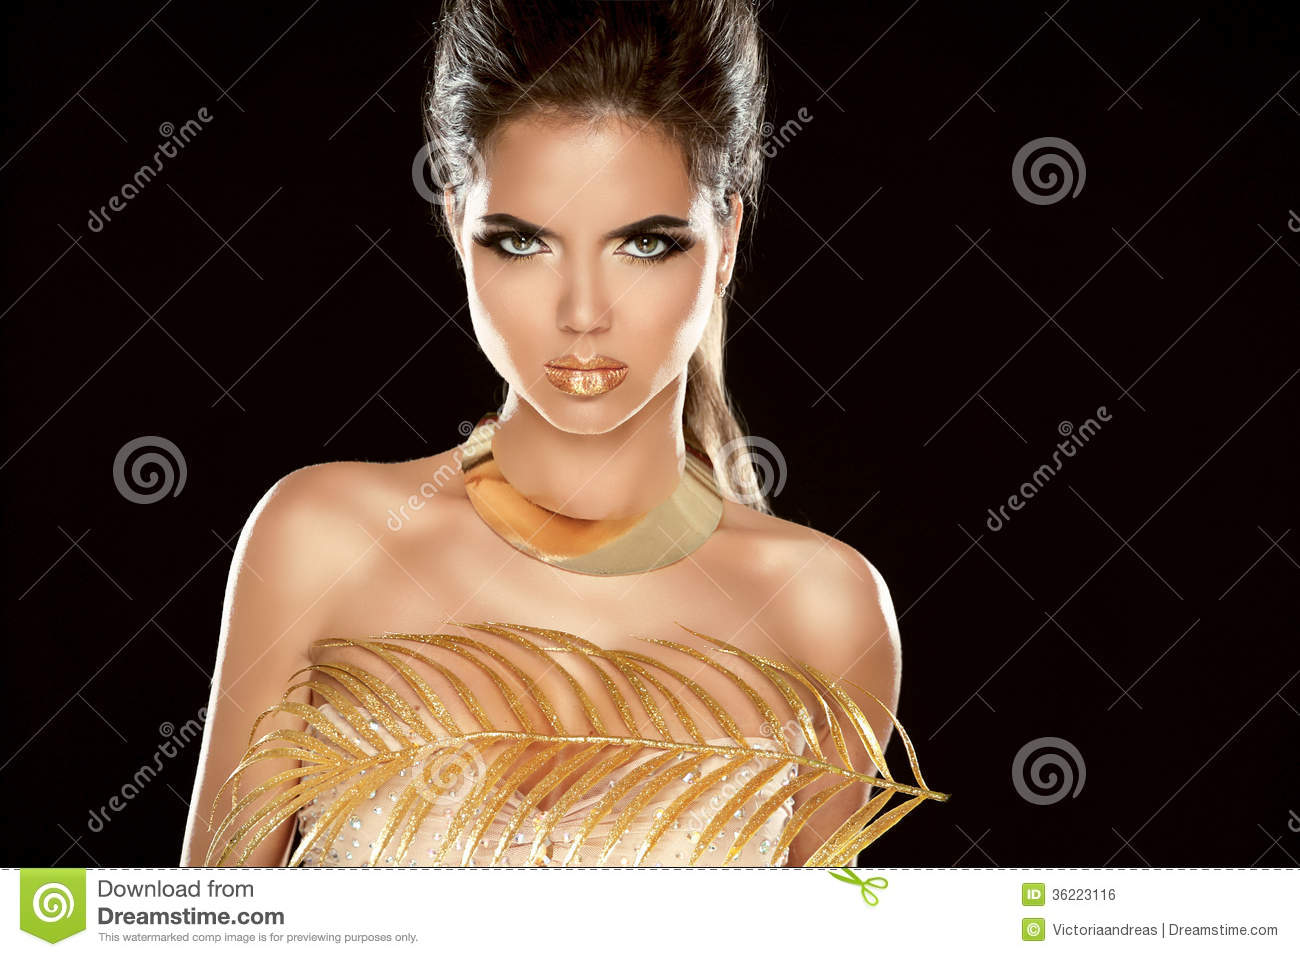 Glamour Fashion Girl Model Portrait With Luxury Golden Jewelry Stock Photo Image 36223116